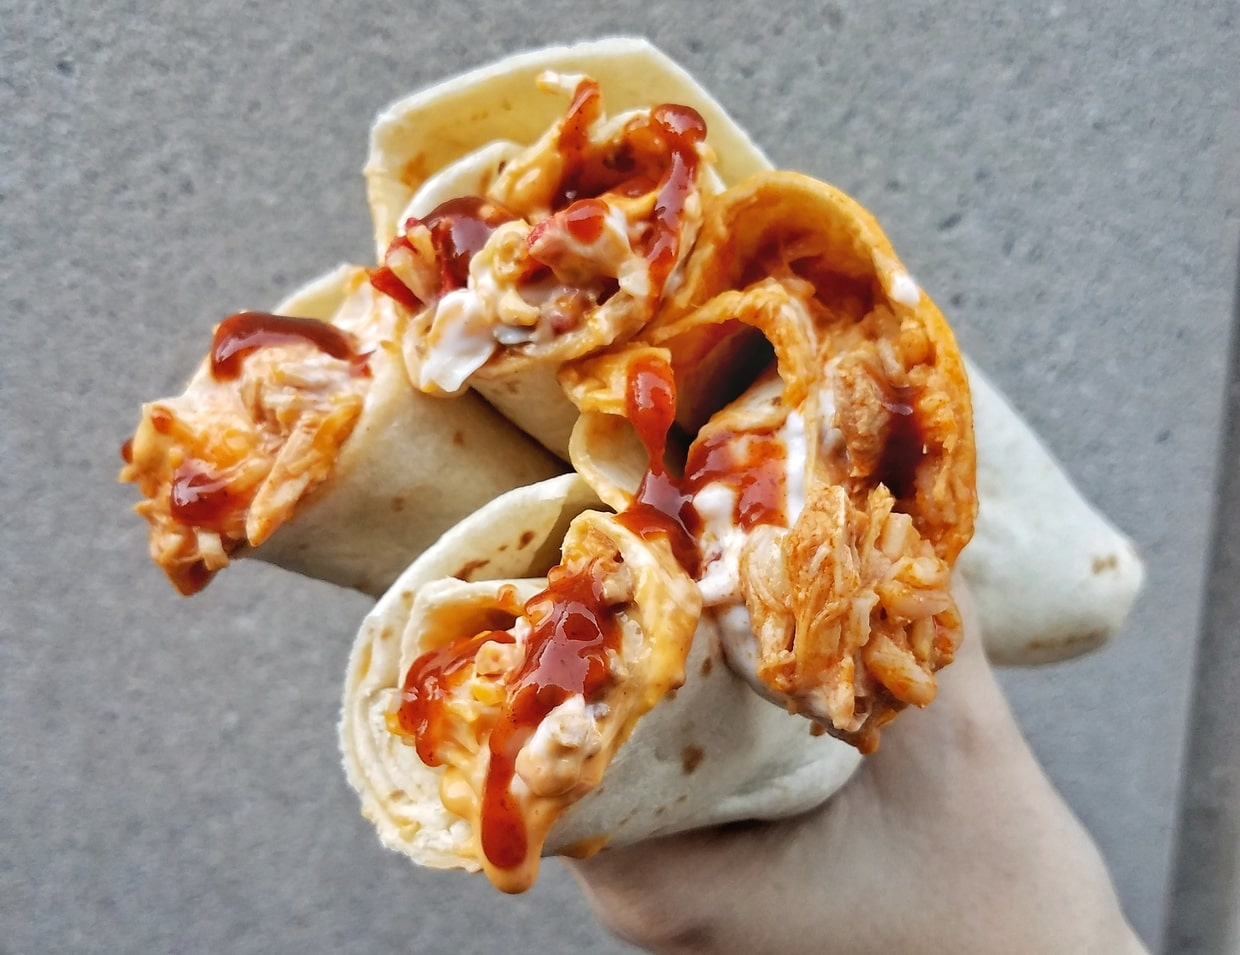 Taco Bell Is Kicking Off 2019 With Nationwide Launch Of 1 Grande